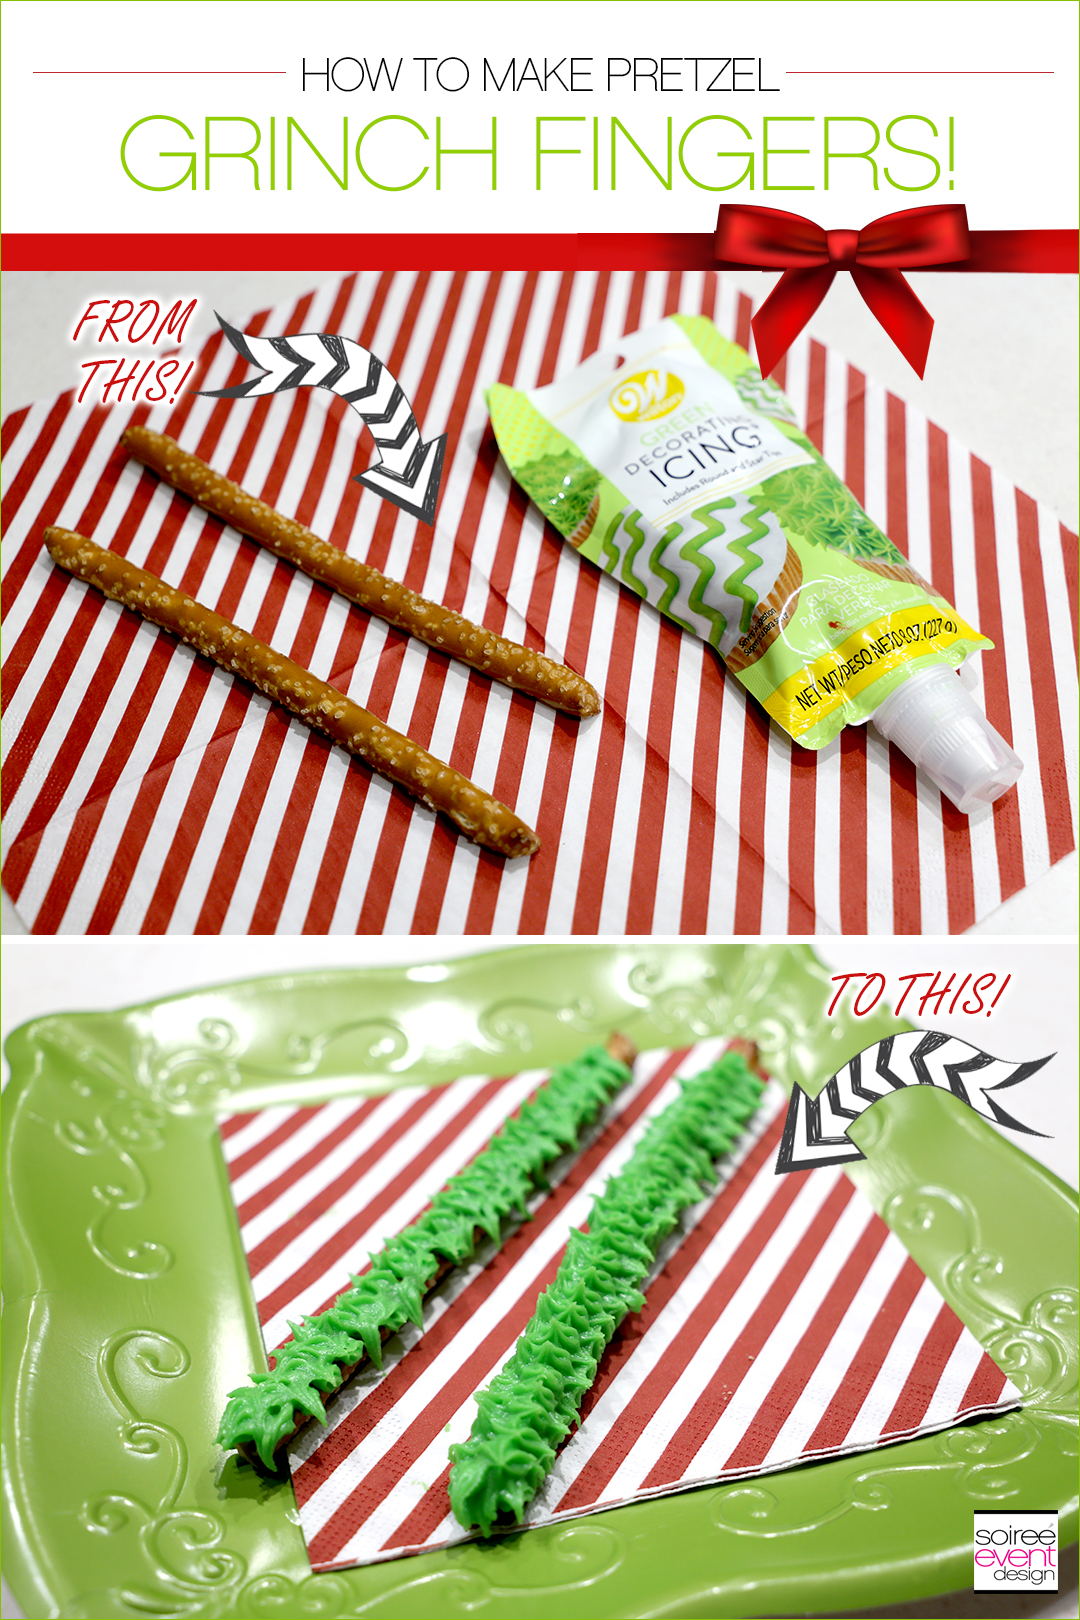 Grinch Dessert Ideas - Grinch Fingers Pretzels tutorial